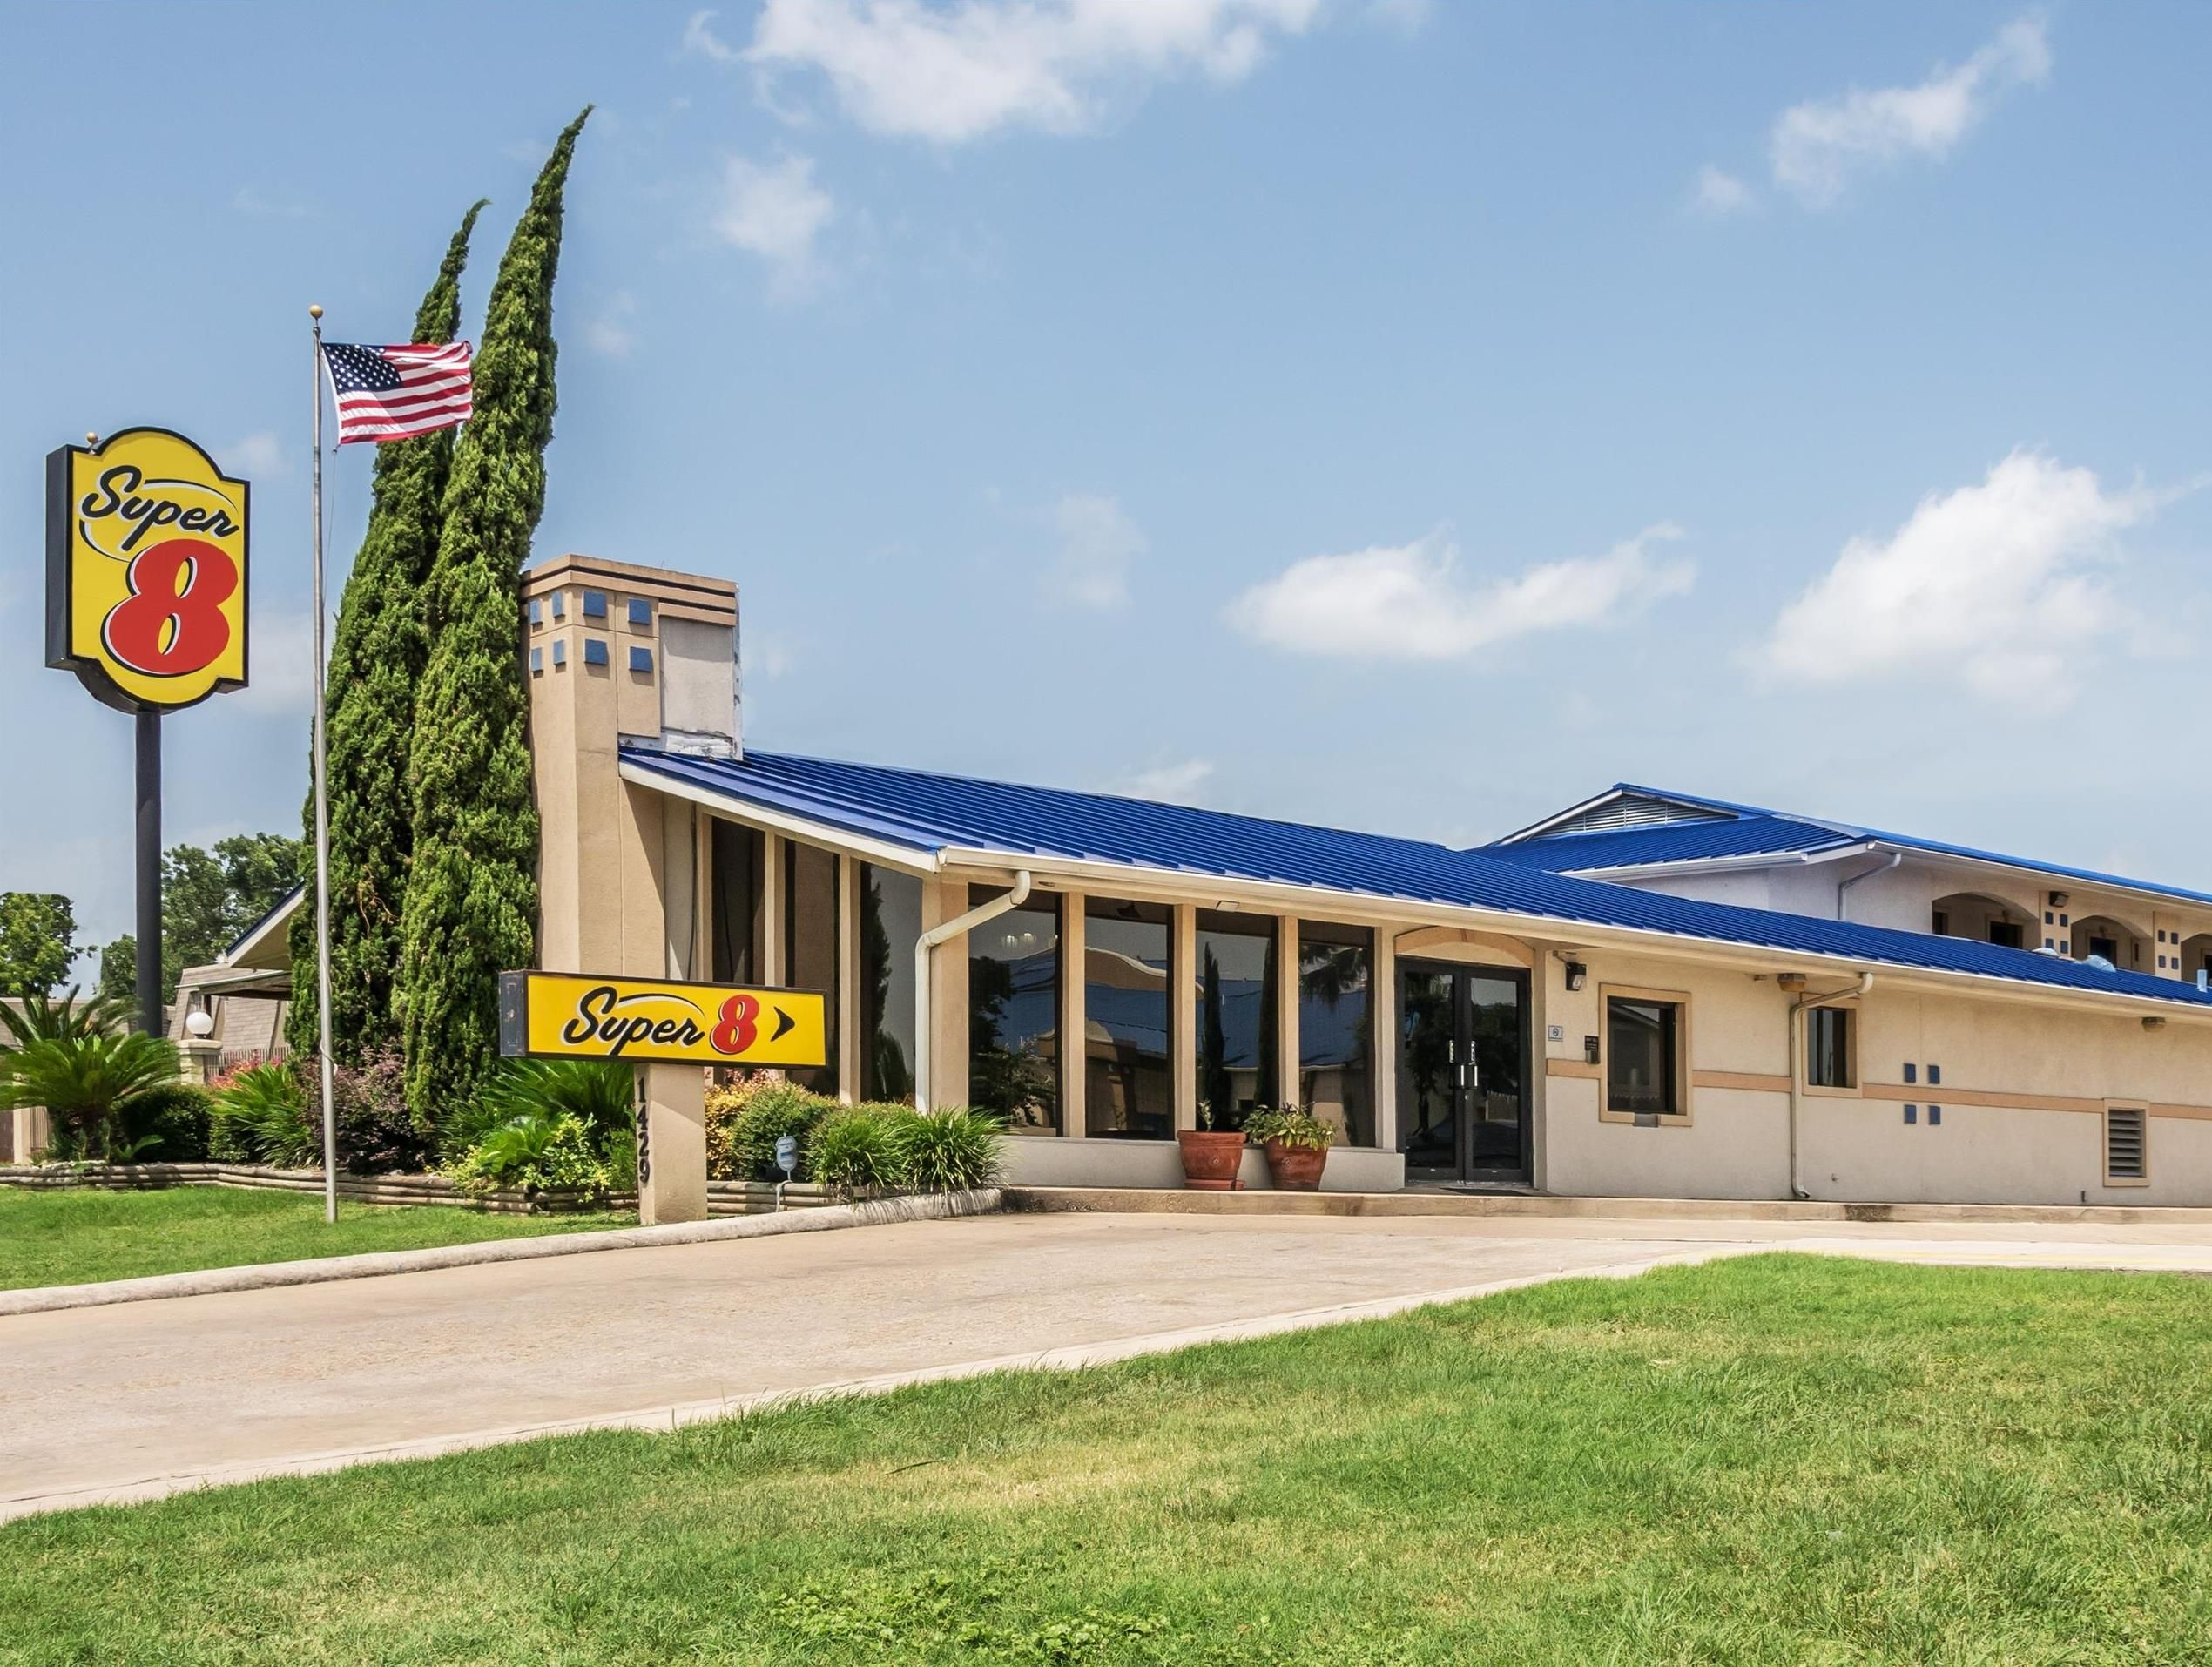 San Marcos Tx Super 8 San Marcos United States North America Stop At Super 8 San Marcos To Discover The Wonders Of San Marco San Marco Affordable Hotels San